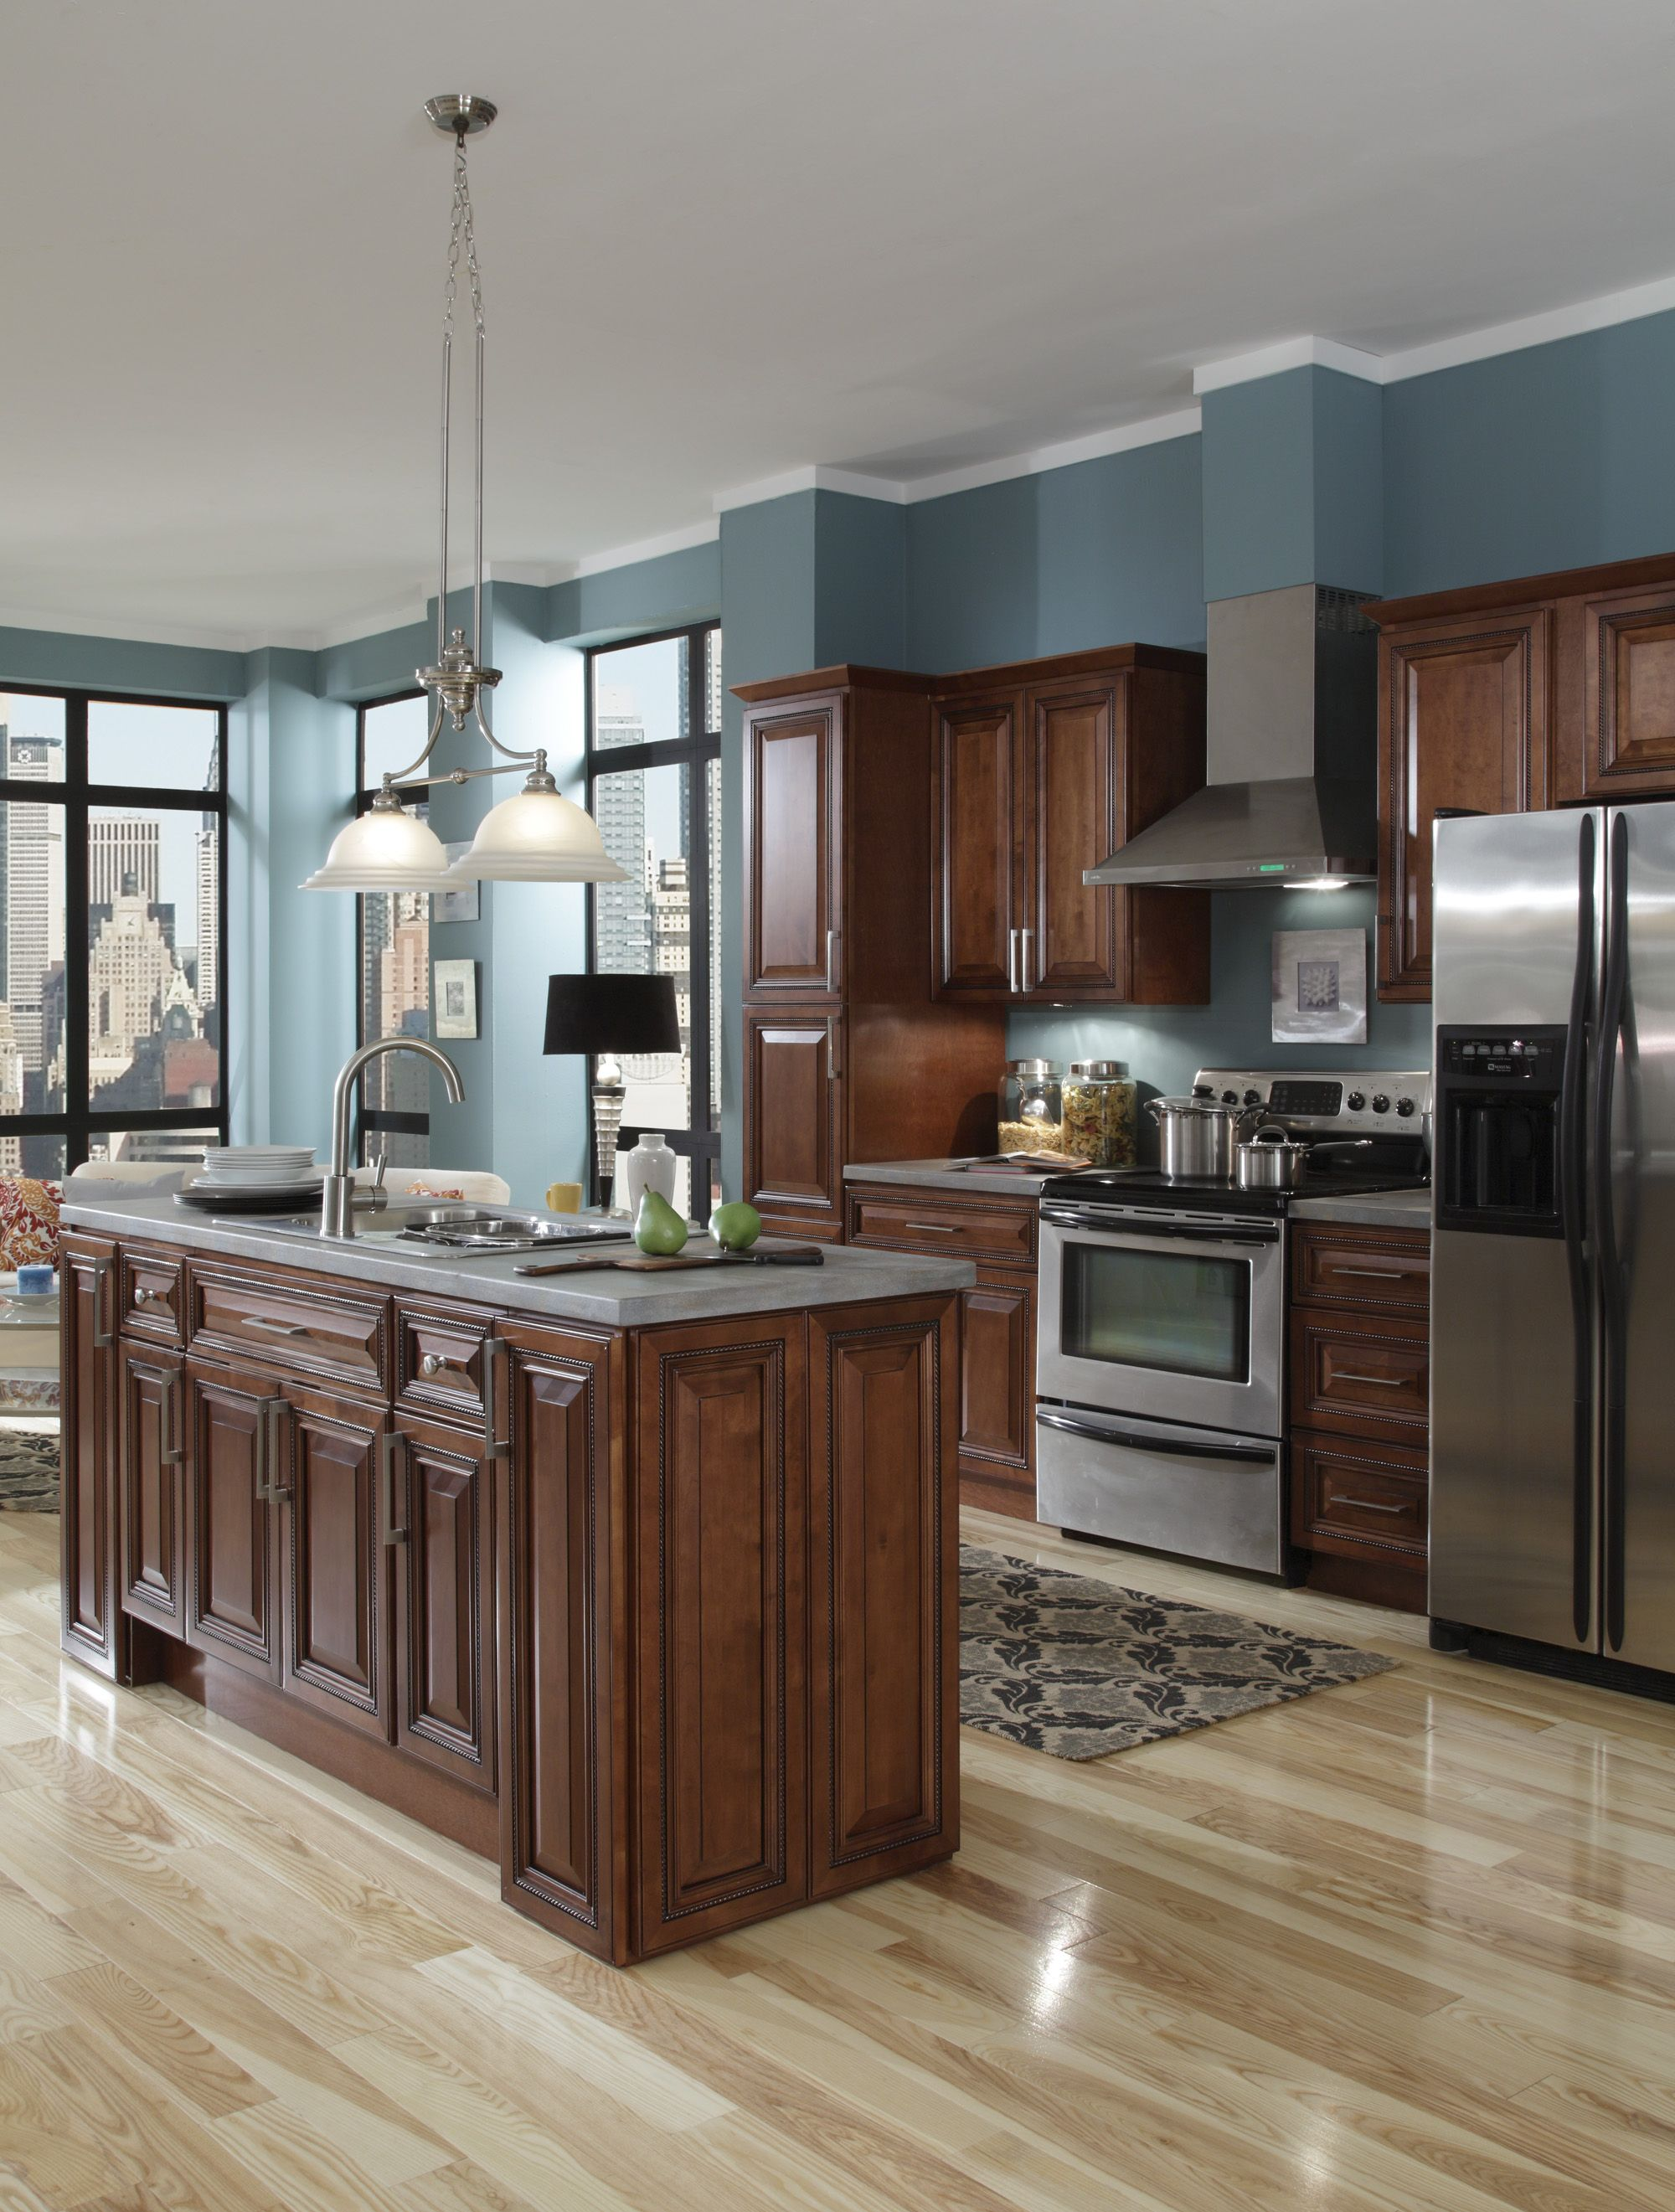 B Jorgsen Co Buckingham Sienna Rope Kitchen Features Soft Closing Drawers Solid Wood Frames And Are Crafted With Dovetail J Cabinets To Go Home Decor Home